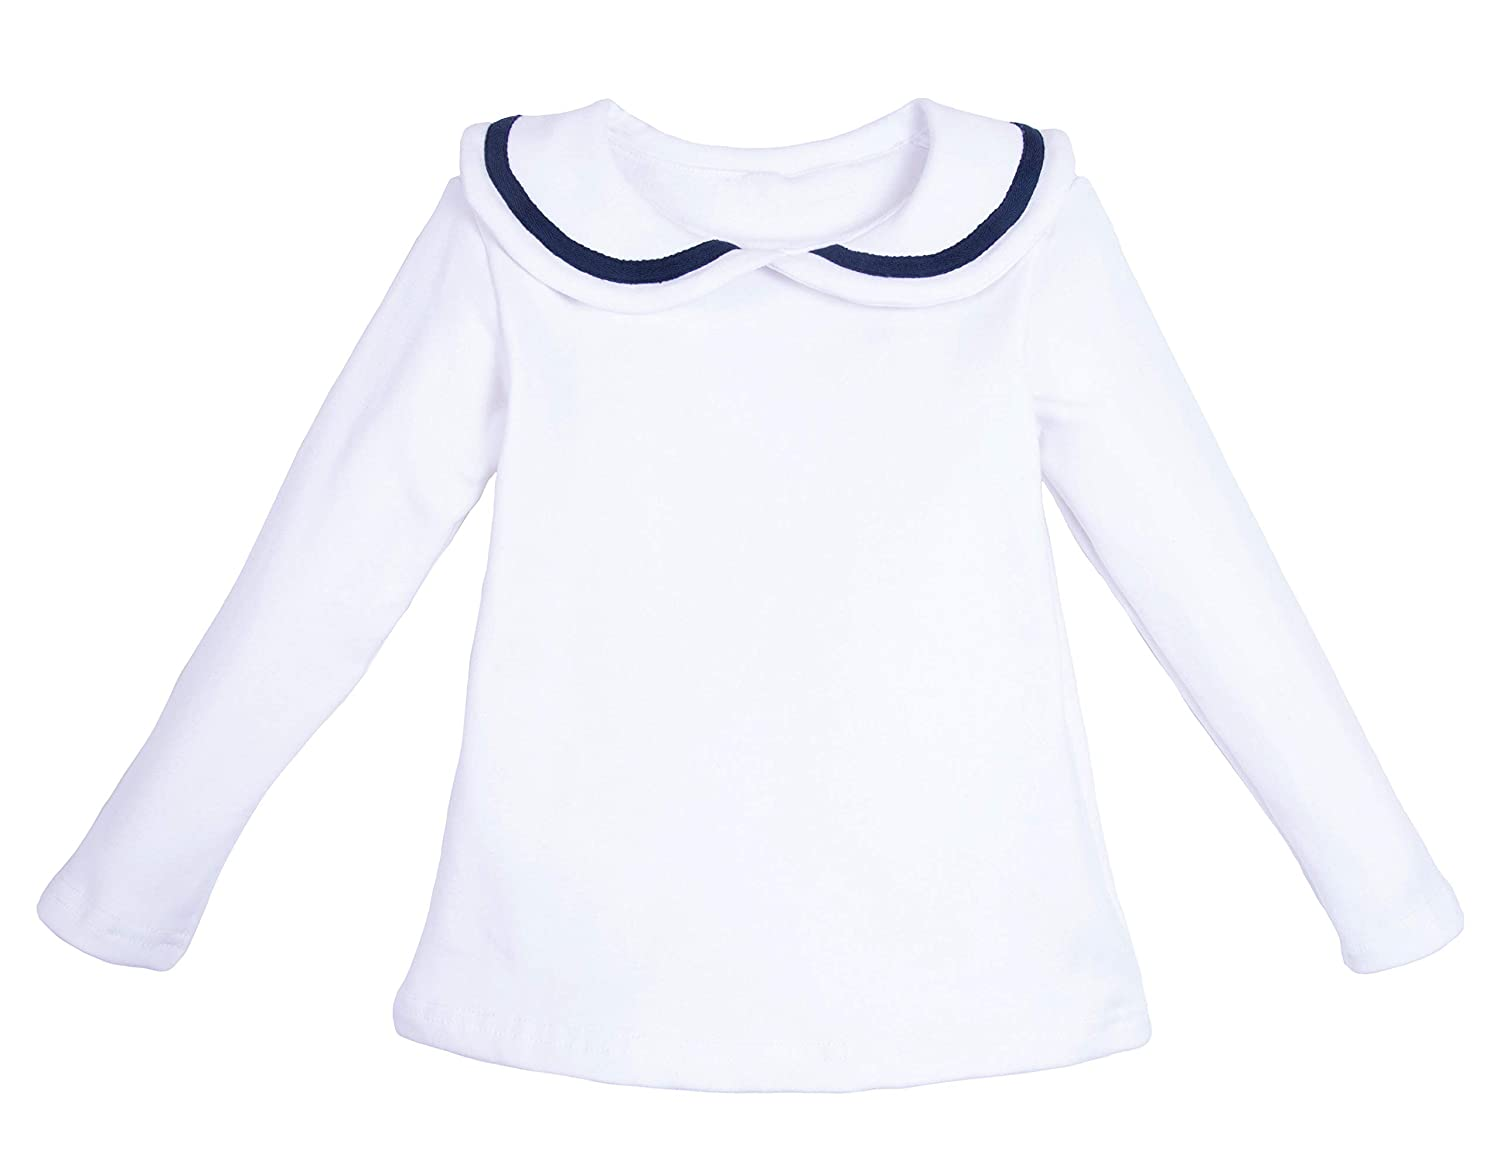 ContiKids Girls Peter Pan Collar Polo Shirt Blouse